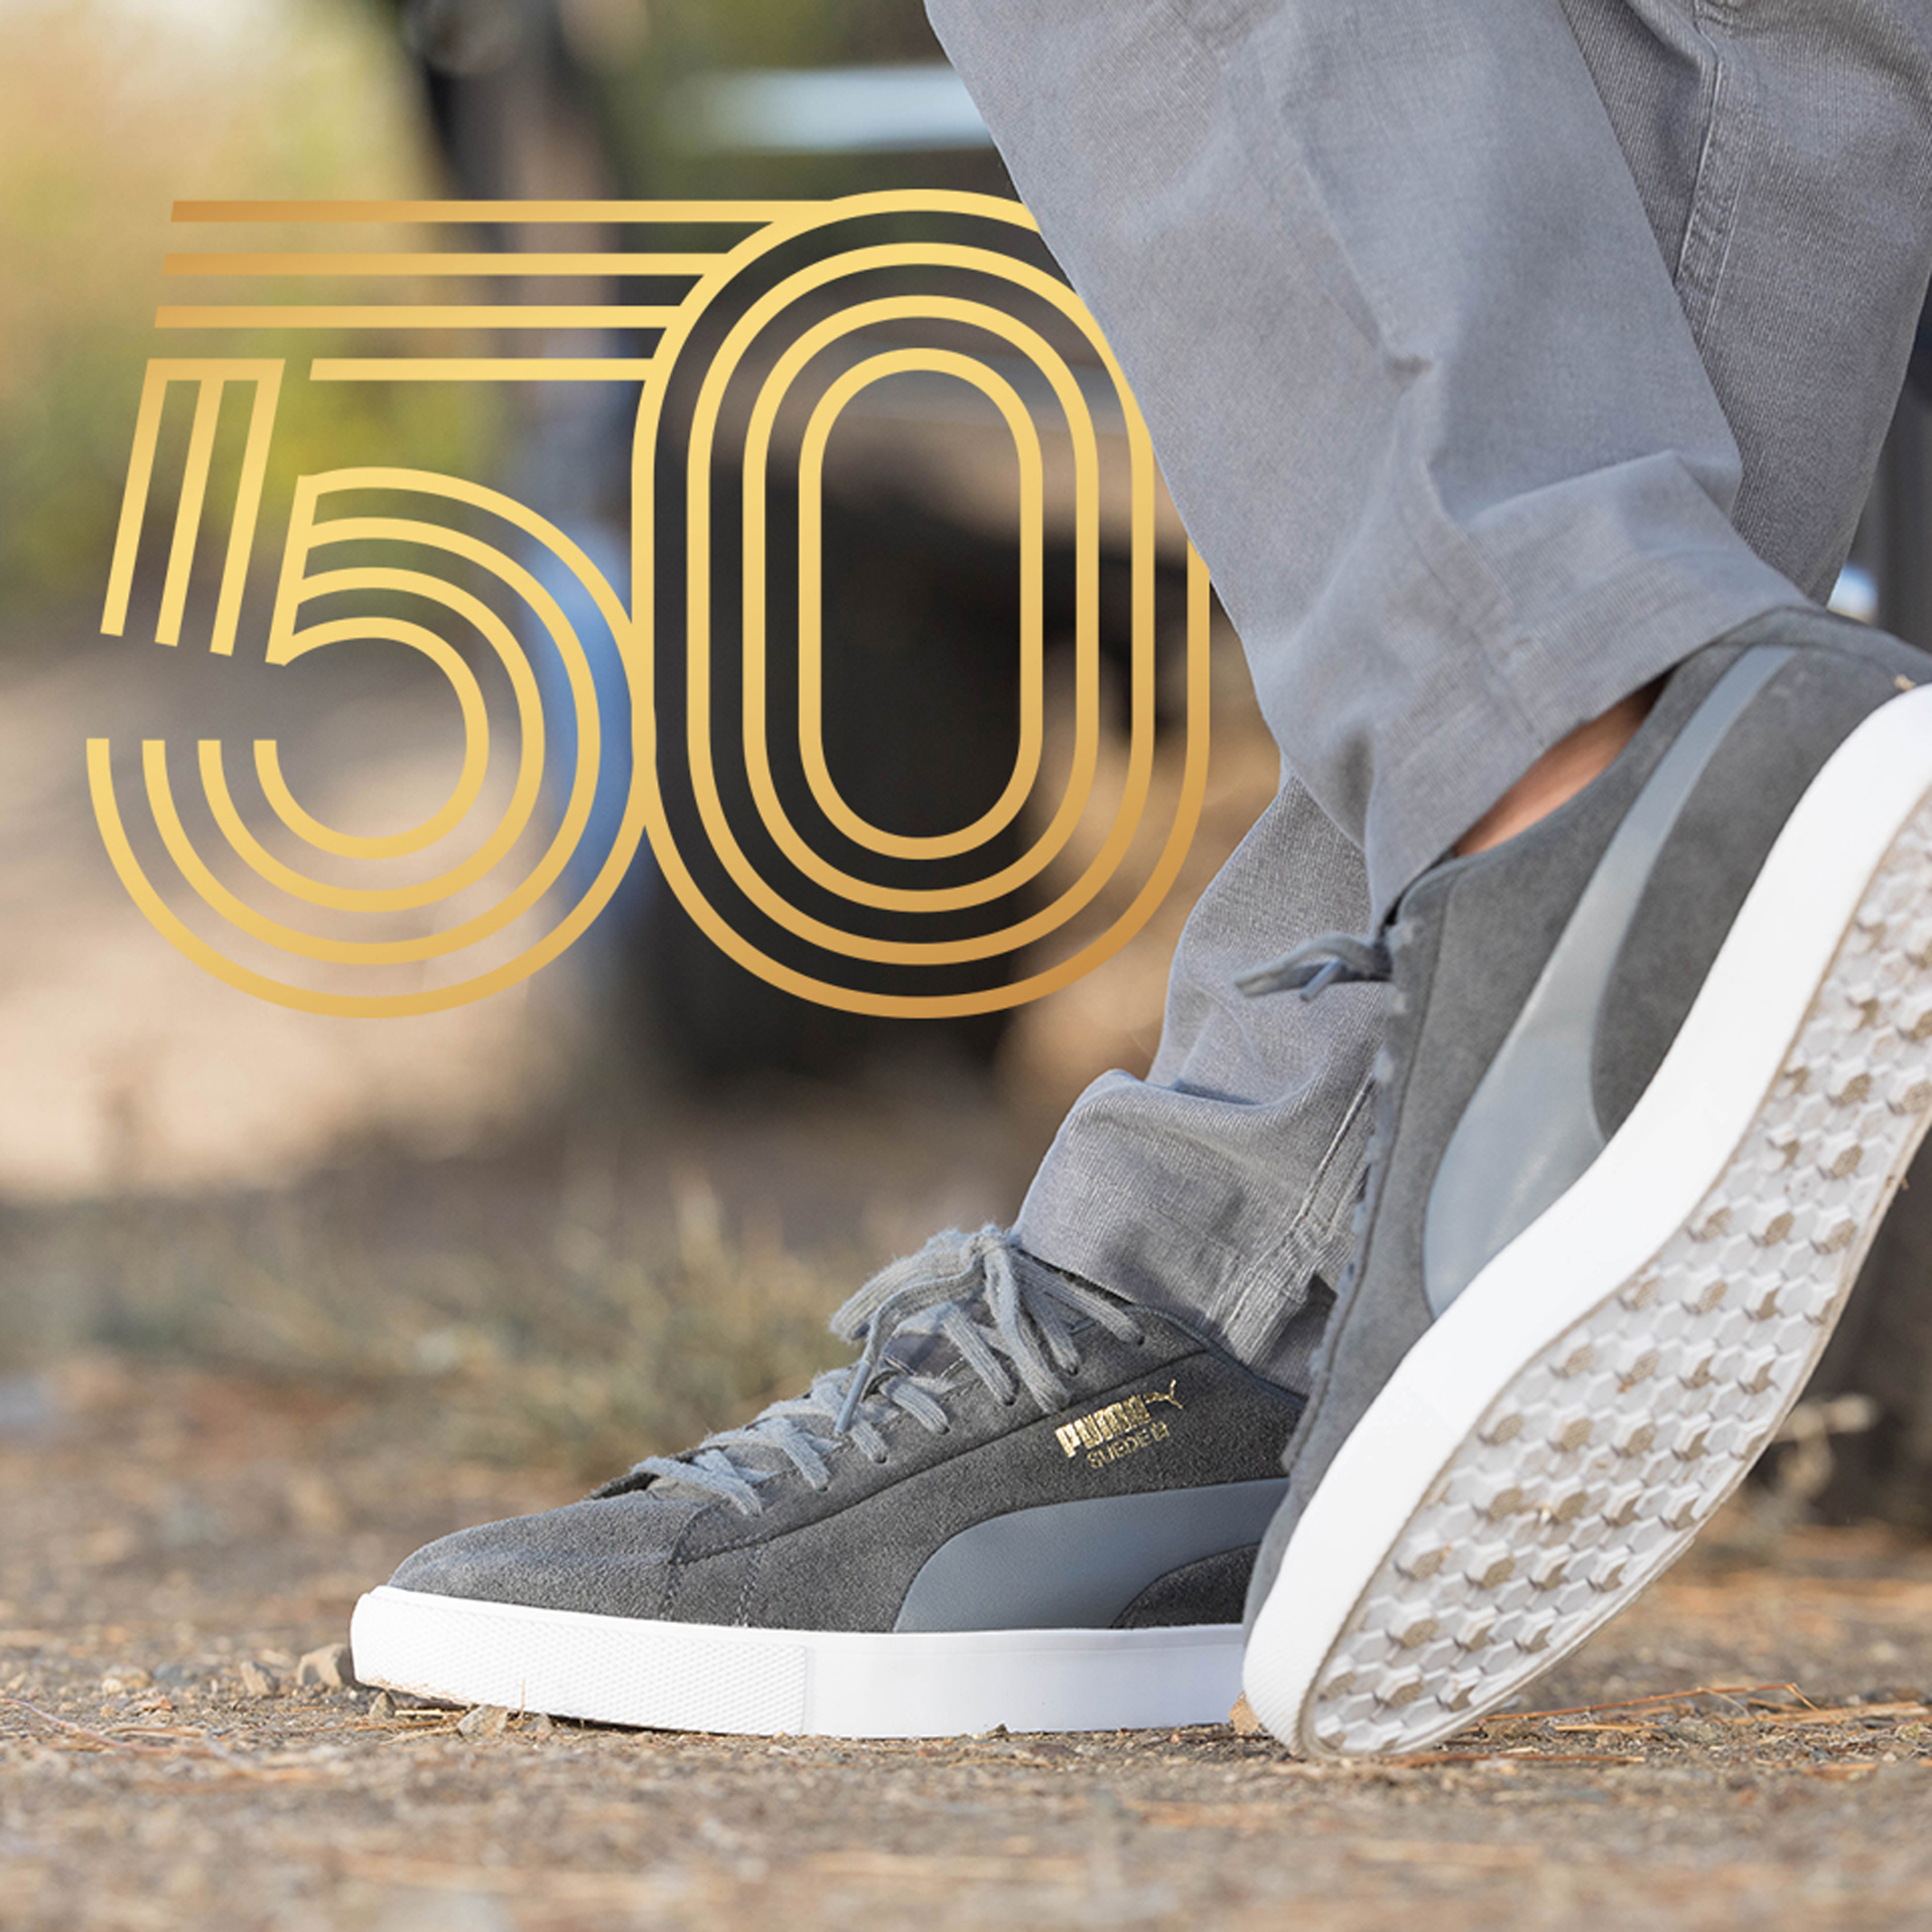 1b79d00ec9d 50th Anniversary Of Puma s Iconic Suede Shoes Inspires Throwback ...